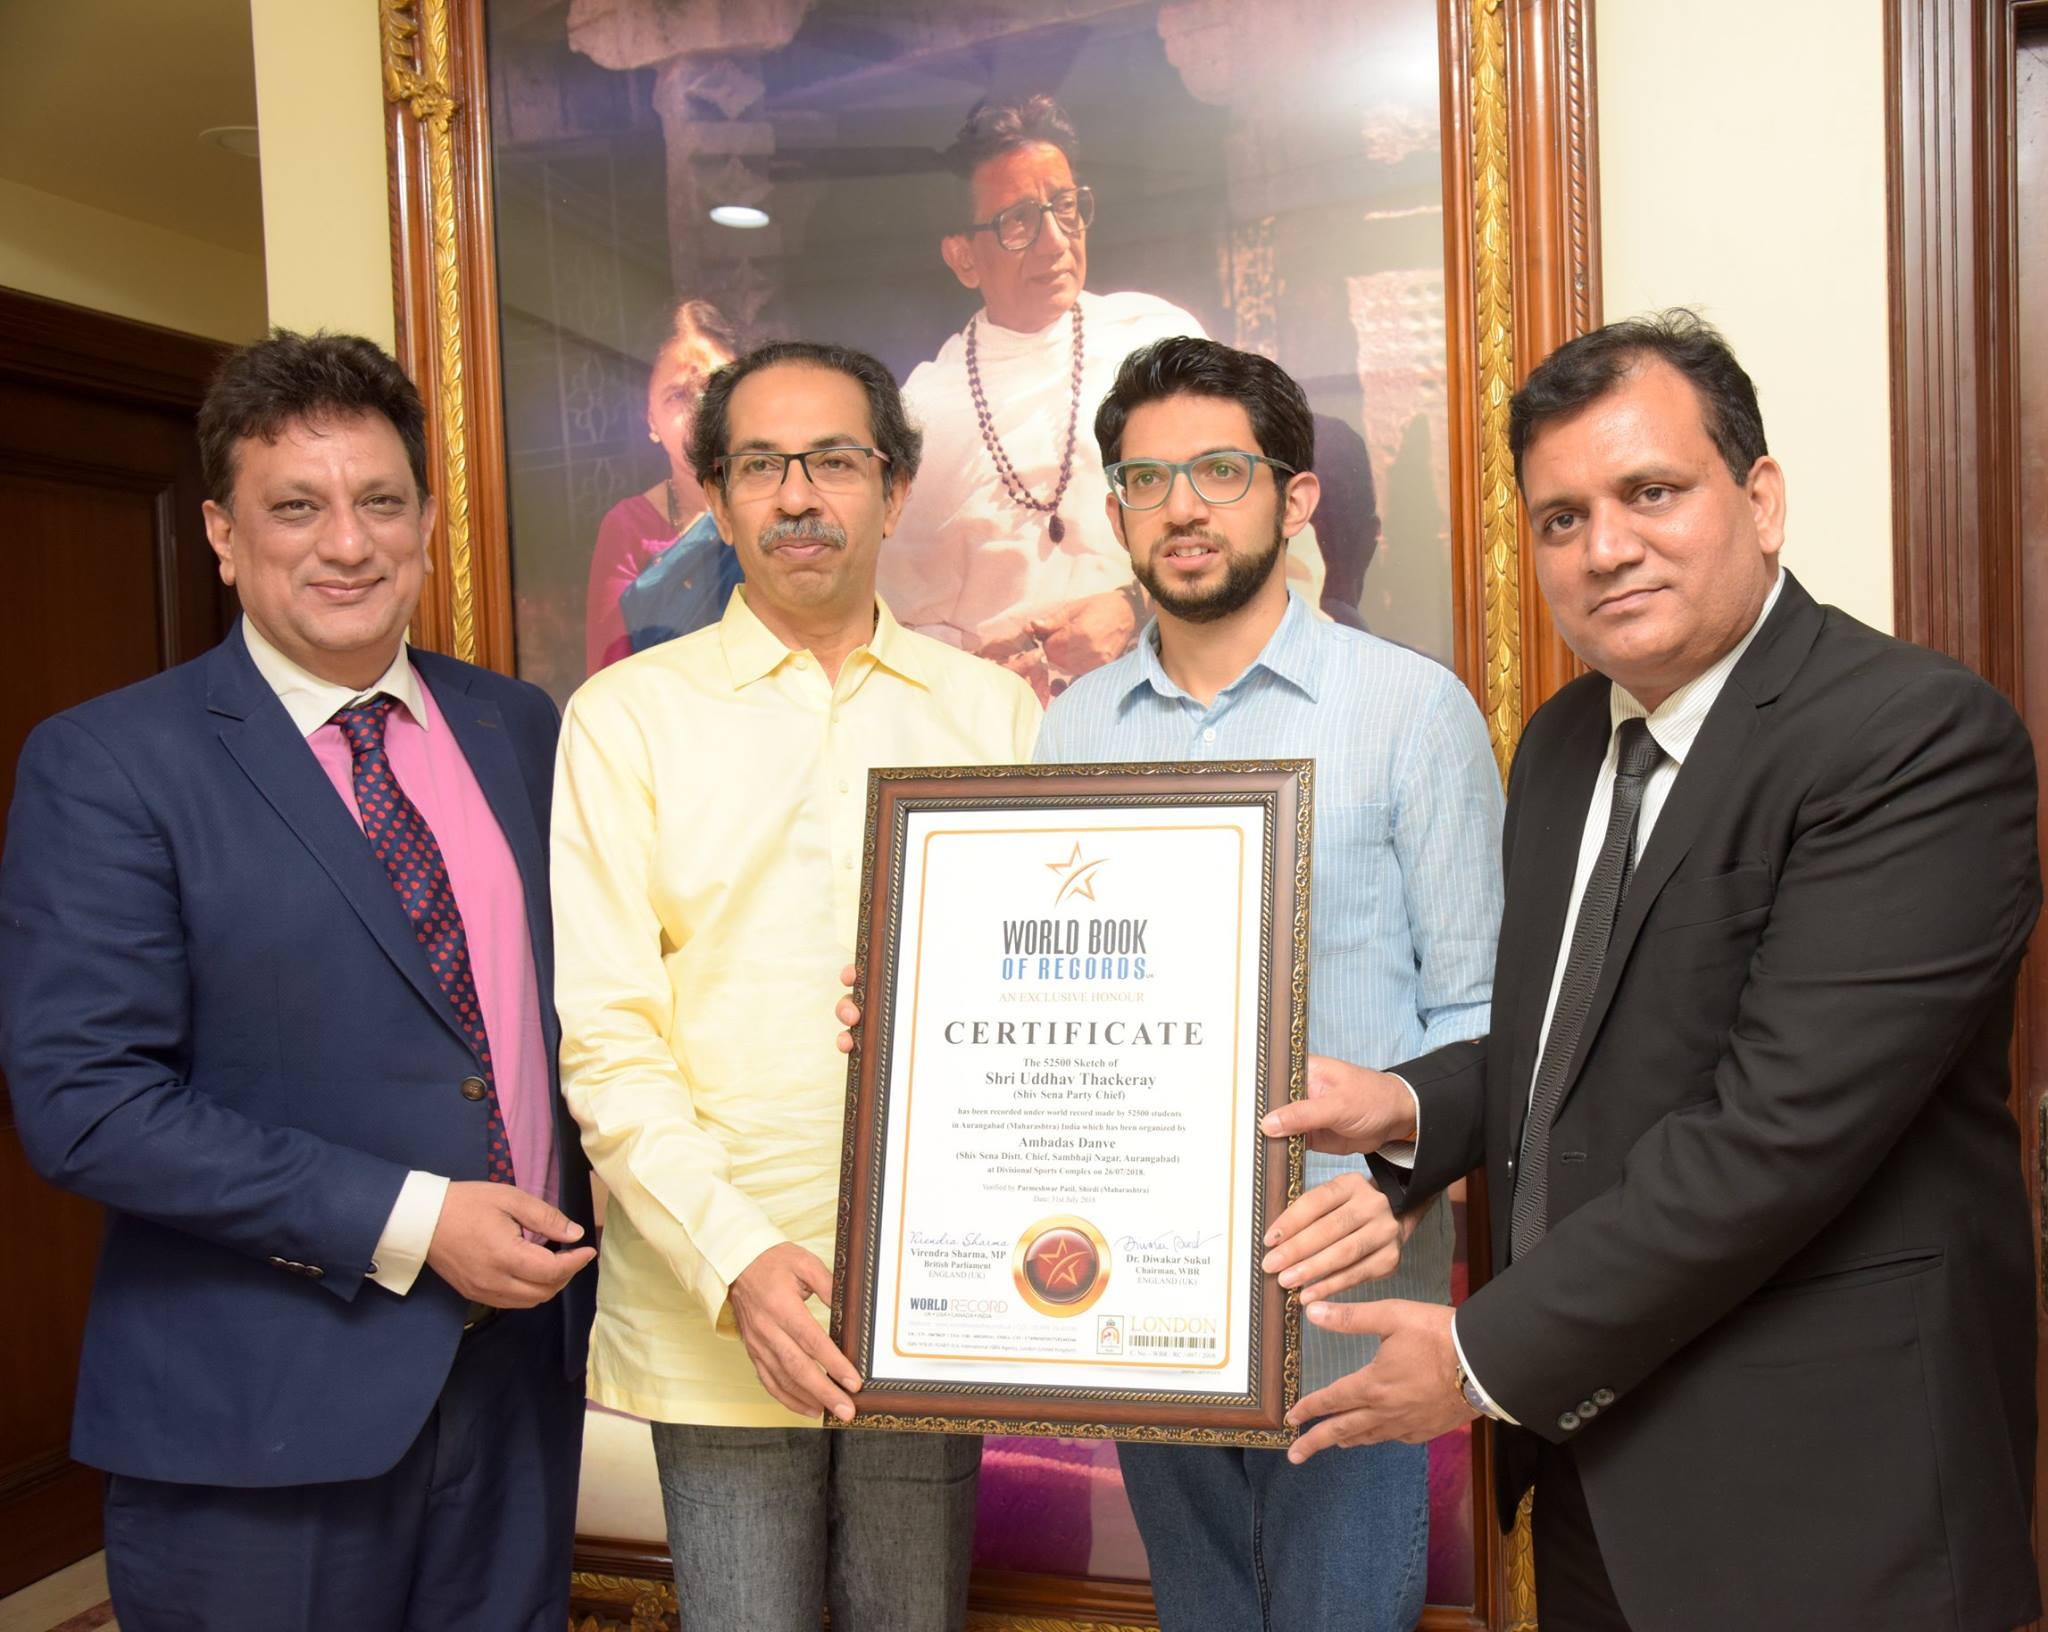 Sketch of Shri Uddhav Thackeray gets included in World Record in Aurangabad, Maharashtra (India)